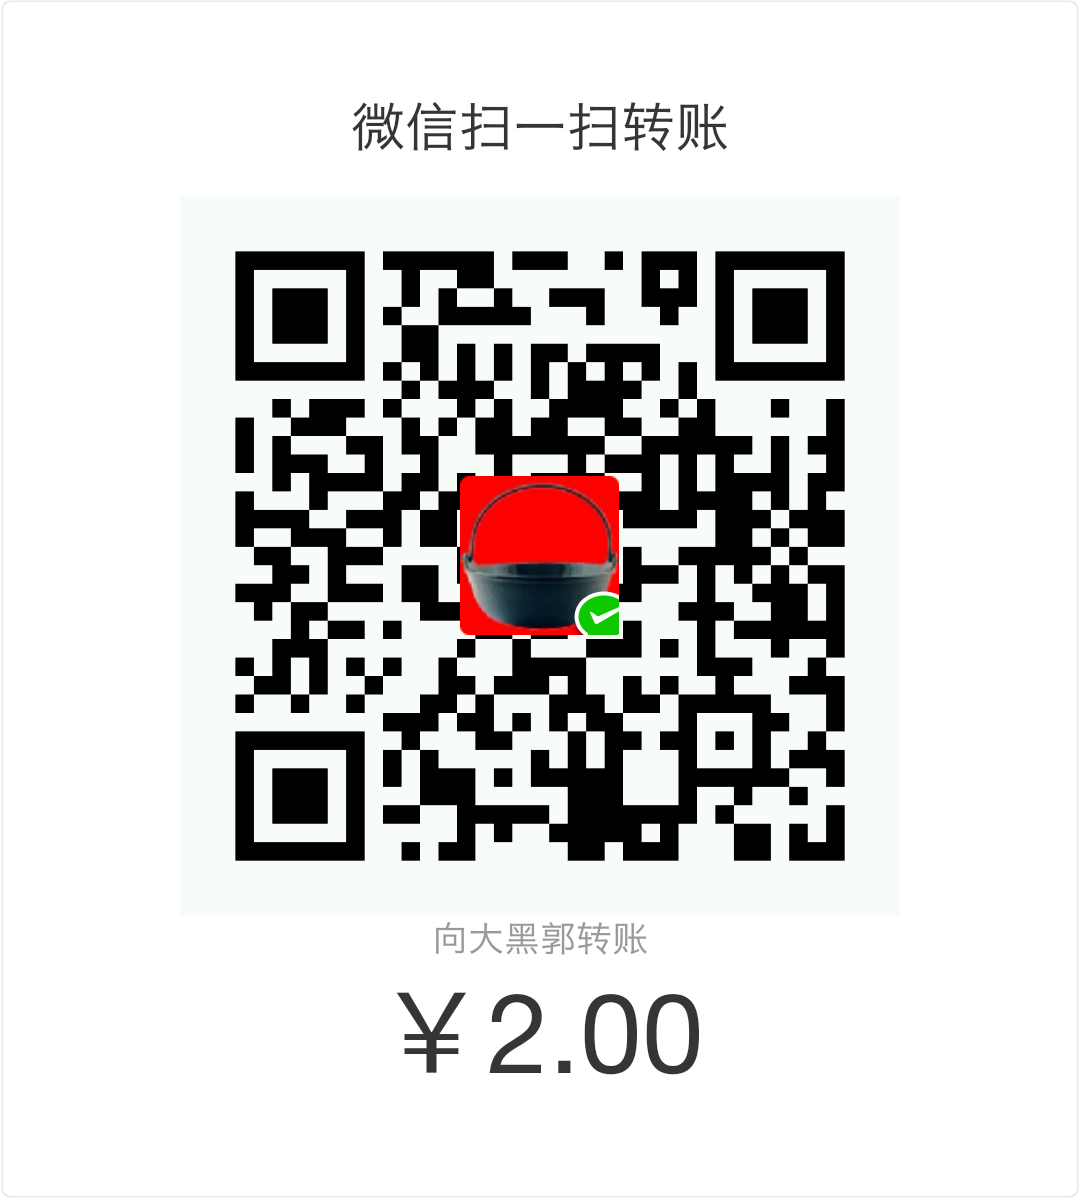 郭峰浩 WeChat Pay